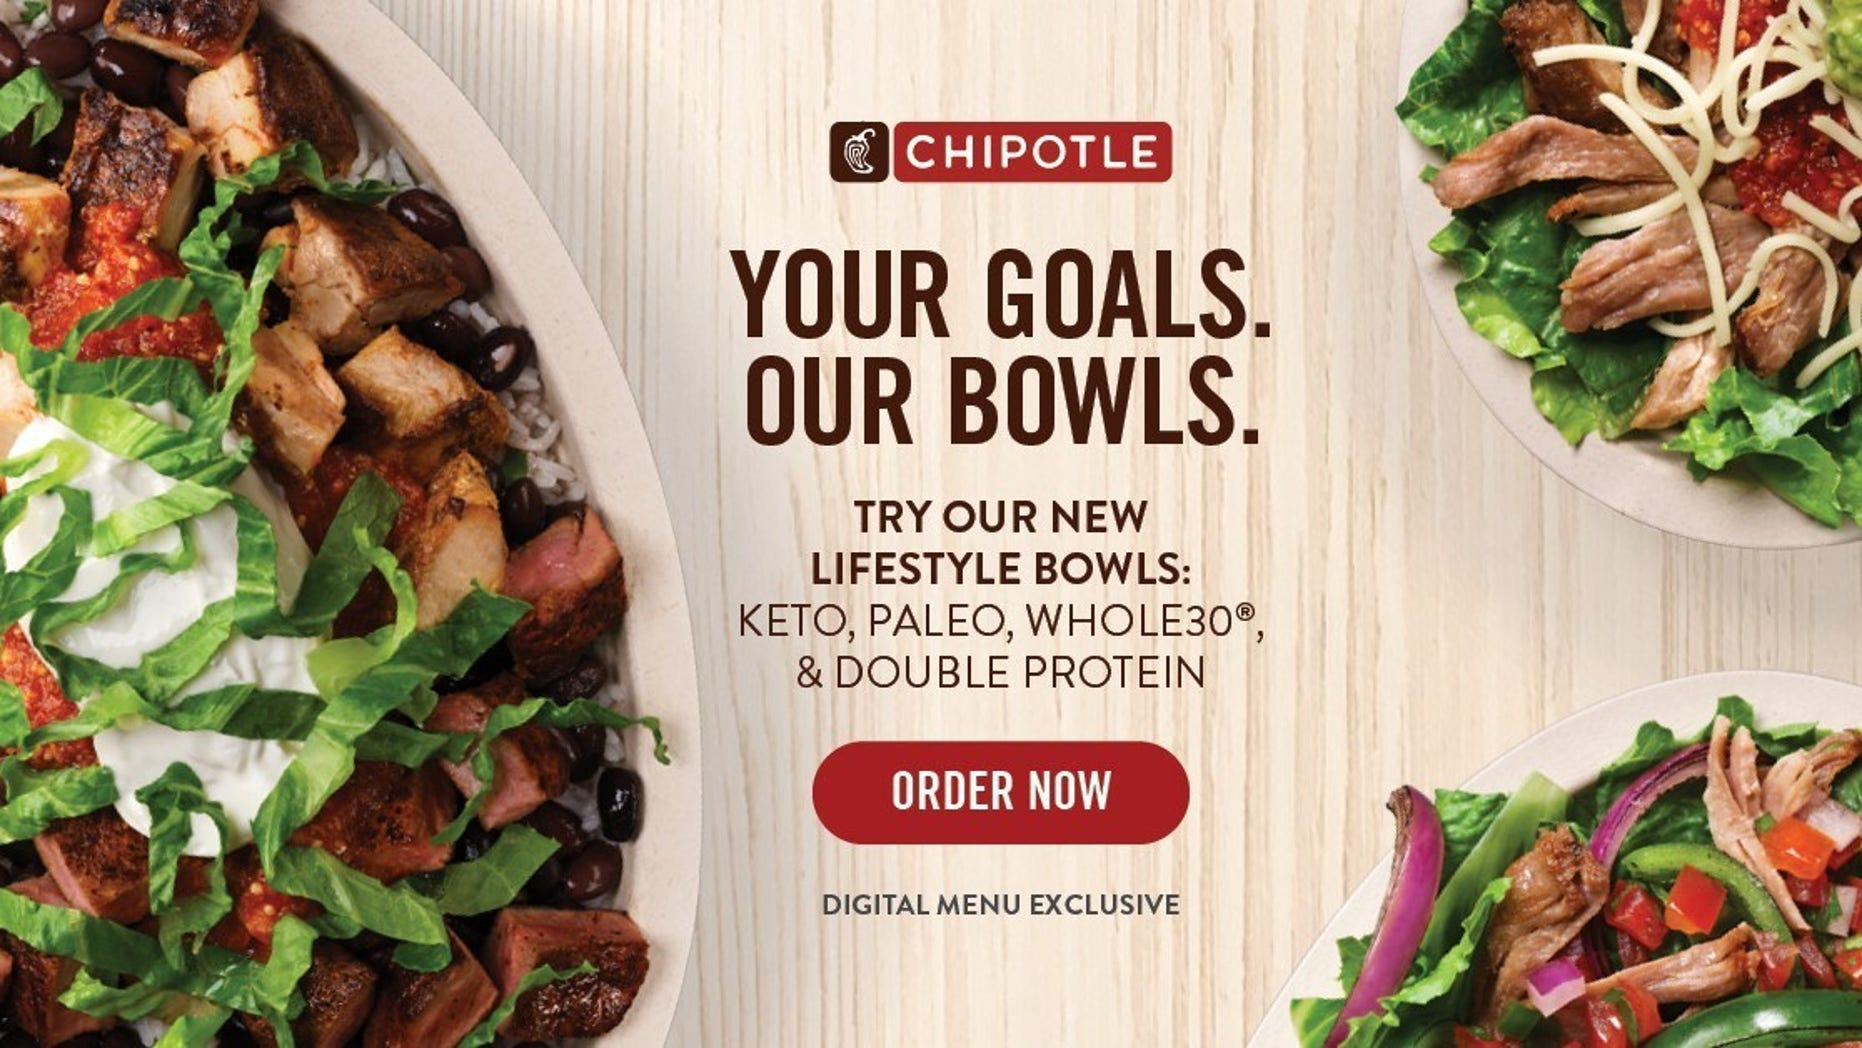 Chipotle's new Lifestyle Bowls include a Whole30® Salad Bowl, a Paleo Salad Bowl, a Keto Salad Bowl and a Double Protein Bowl.